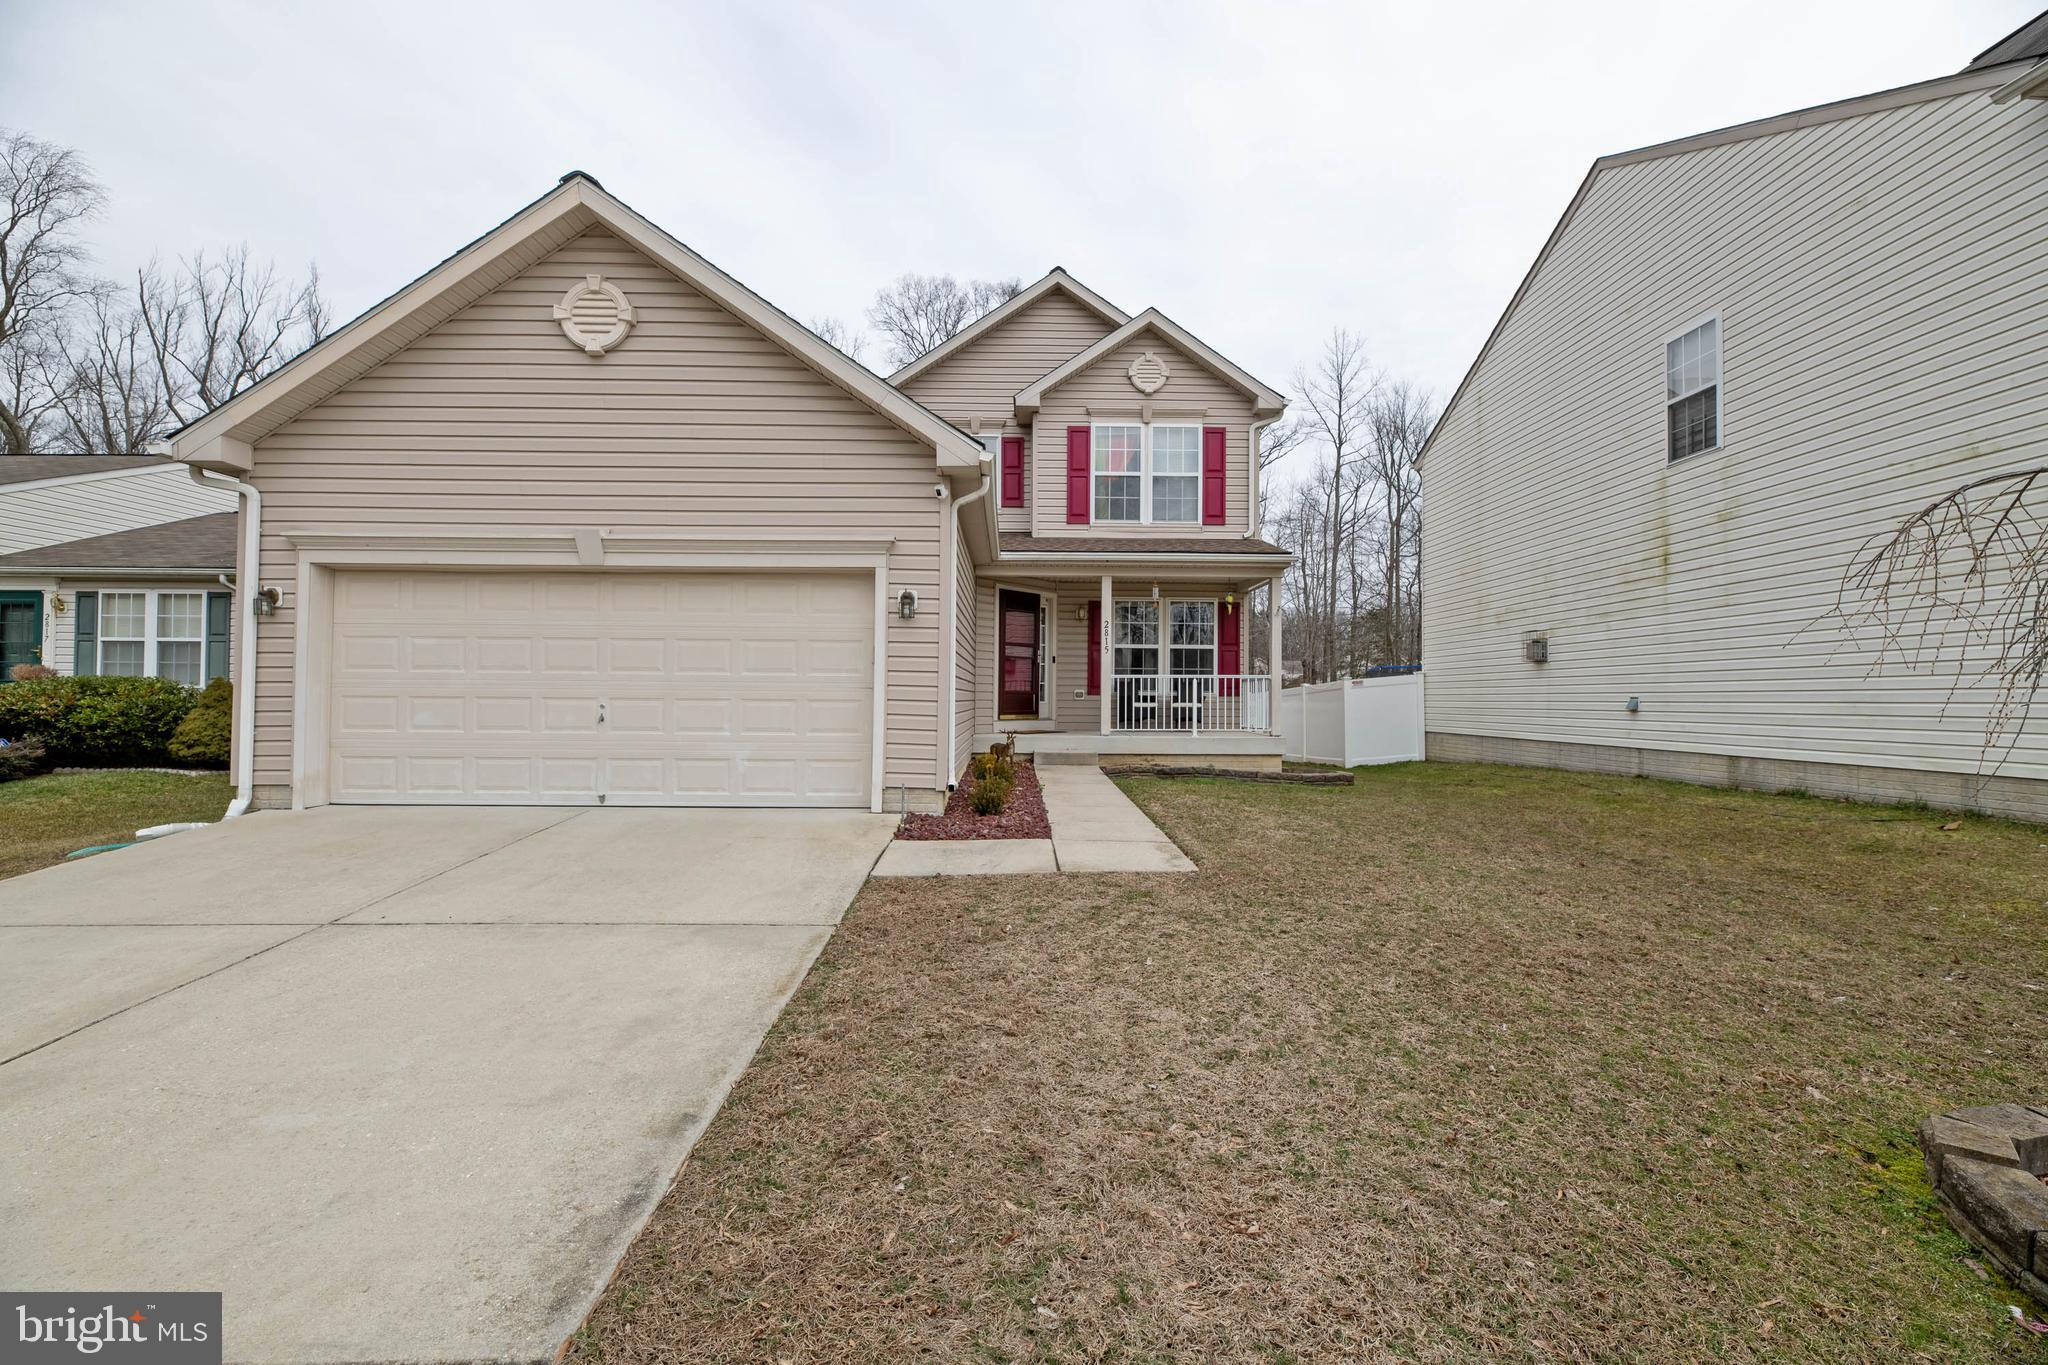 2815 MAJESTY LANE, EDGEWOOD, MD 21040